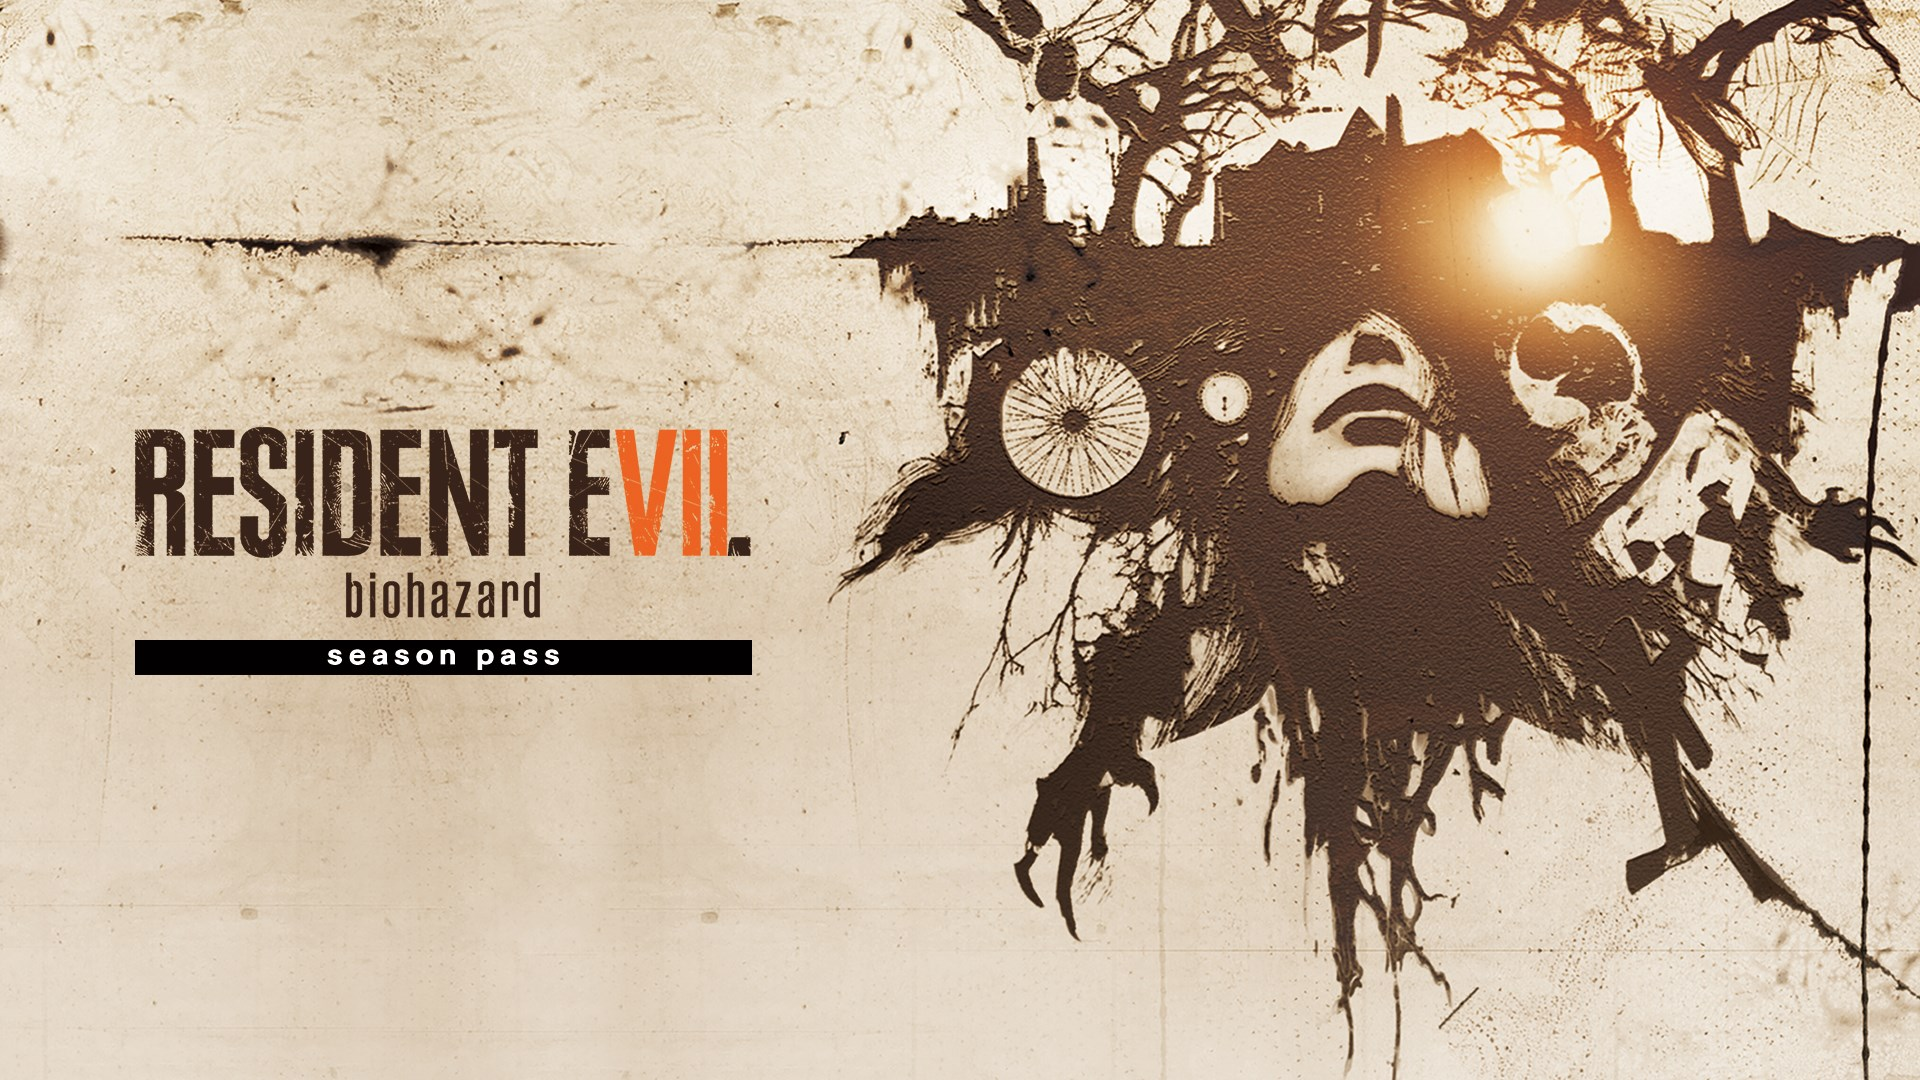 Resident Evil 7 Biohazard Wallpaper Posted By Michelle Sellers